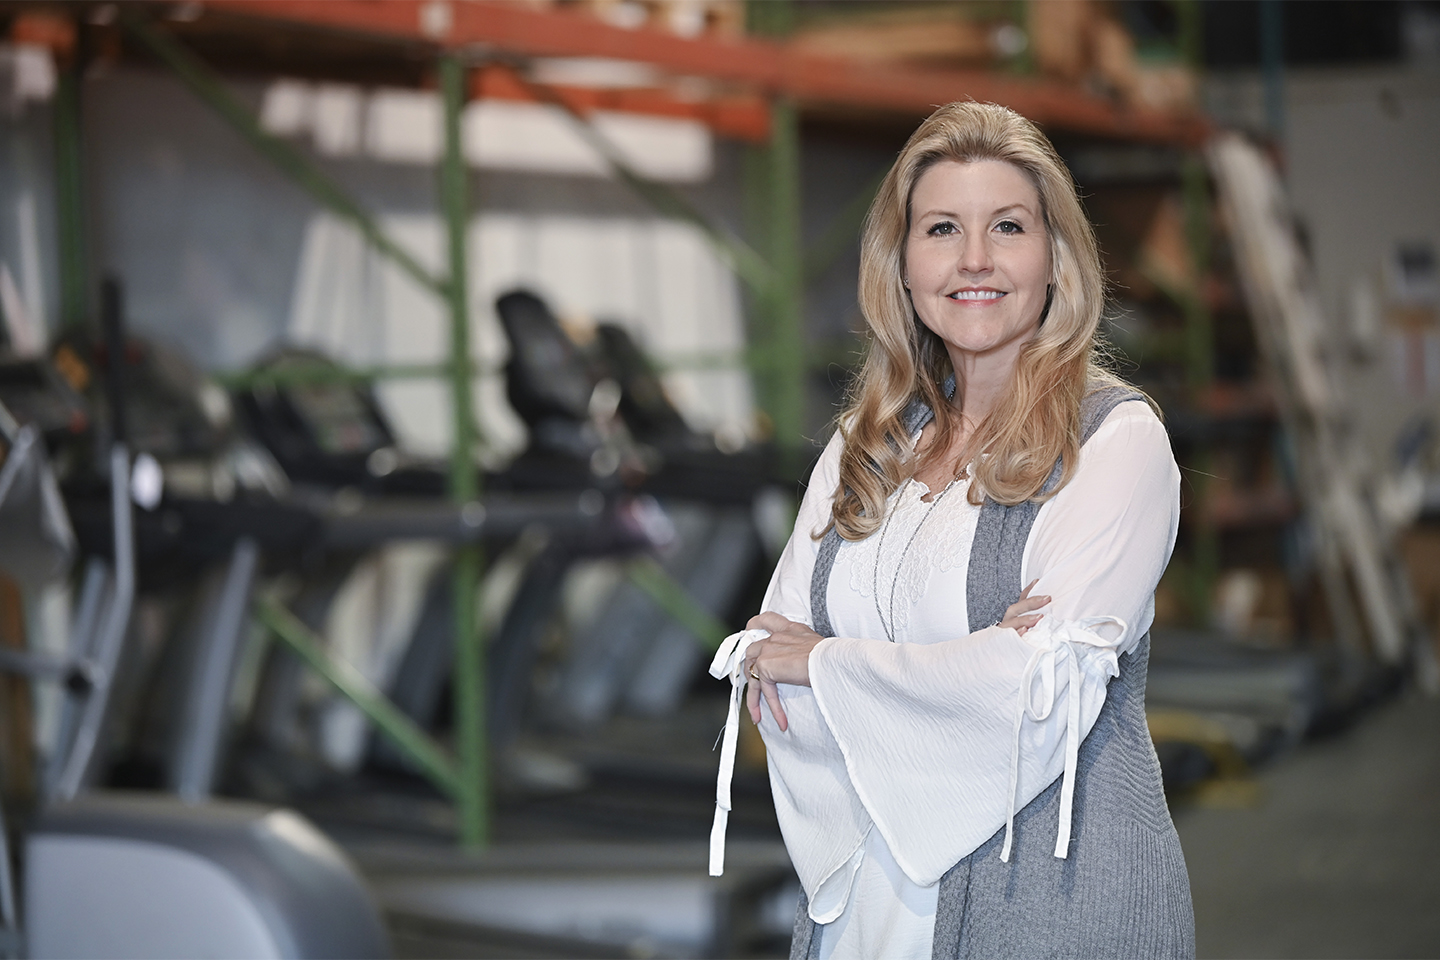 Melissa Conti, owner of Innovative Fitness